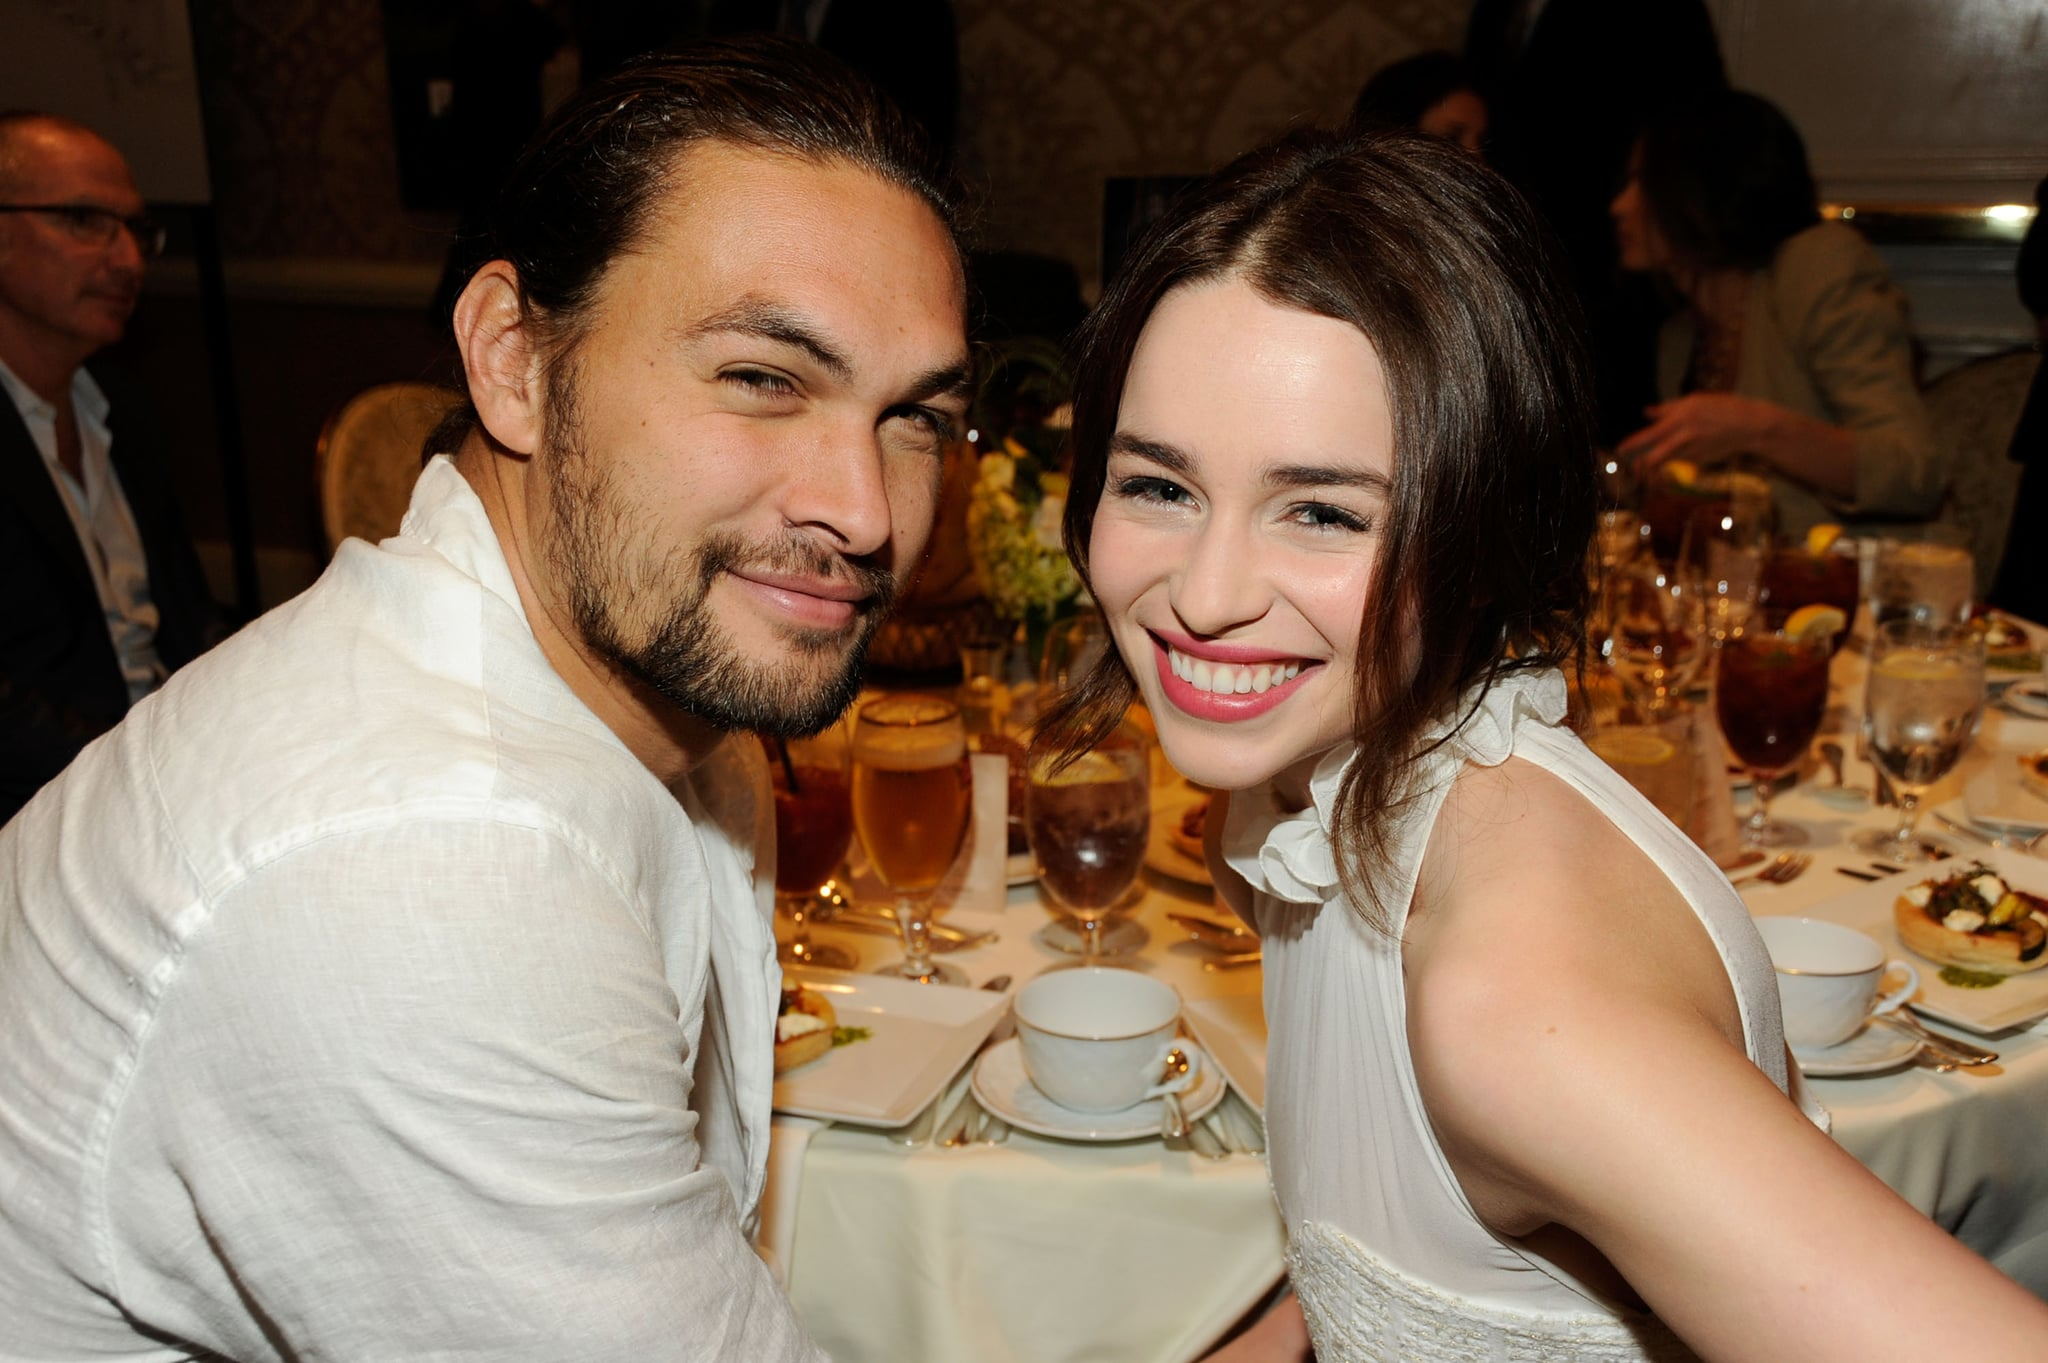 BEVERLY HILLS, CA - JANUARY 13:  Actor Jason Momoa (L) and actress Emilia Clarke attend the 12th Annual AFI Awards held at the Four Seasons Hotel Los Angeles at Beverly Hills on January 13, 2012 in Beverly Hills, California.  (Photo by Frazer Harrison/Getty Images for AFI)